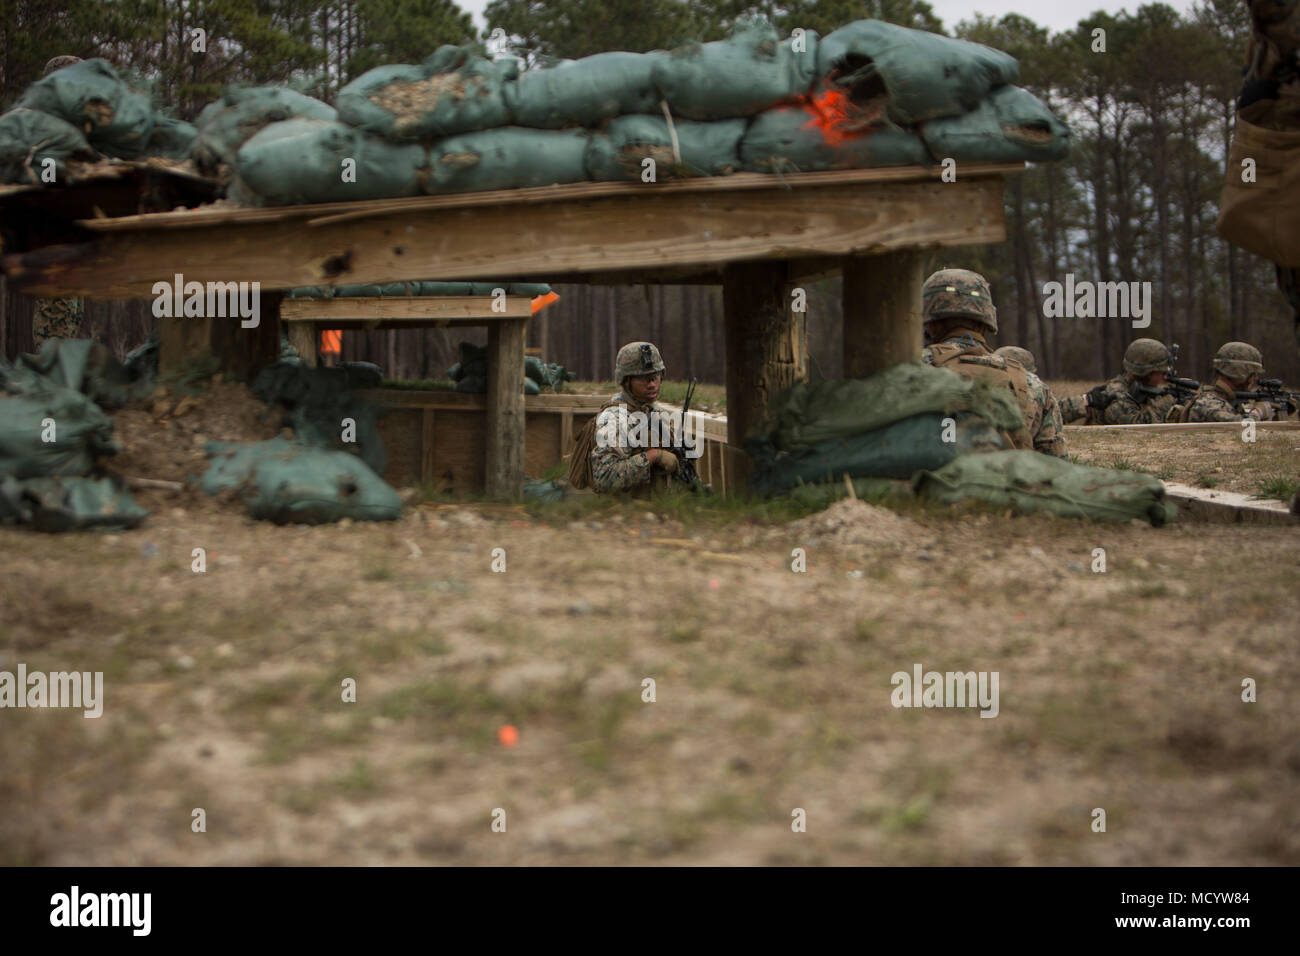 U.S. Marines with India Company, 3rd Battalion, 2nd Marine Regiment, 2nd Marine Division, secure trenches during a live-fire platoon attack at Range G-29 on Camp Lejeune, N.C., March 7, 2018. 2nd Marine Division provided funding and material for the creation of Range G-29 and tasked Marines with 2nd Combat Engineer Battalion to finalize the production of the range. (U.S. Marine Corps photo by Cpl. Justin X. Toledo). - Stock Image